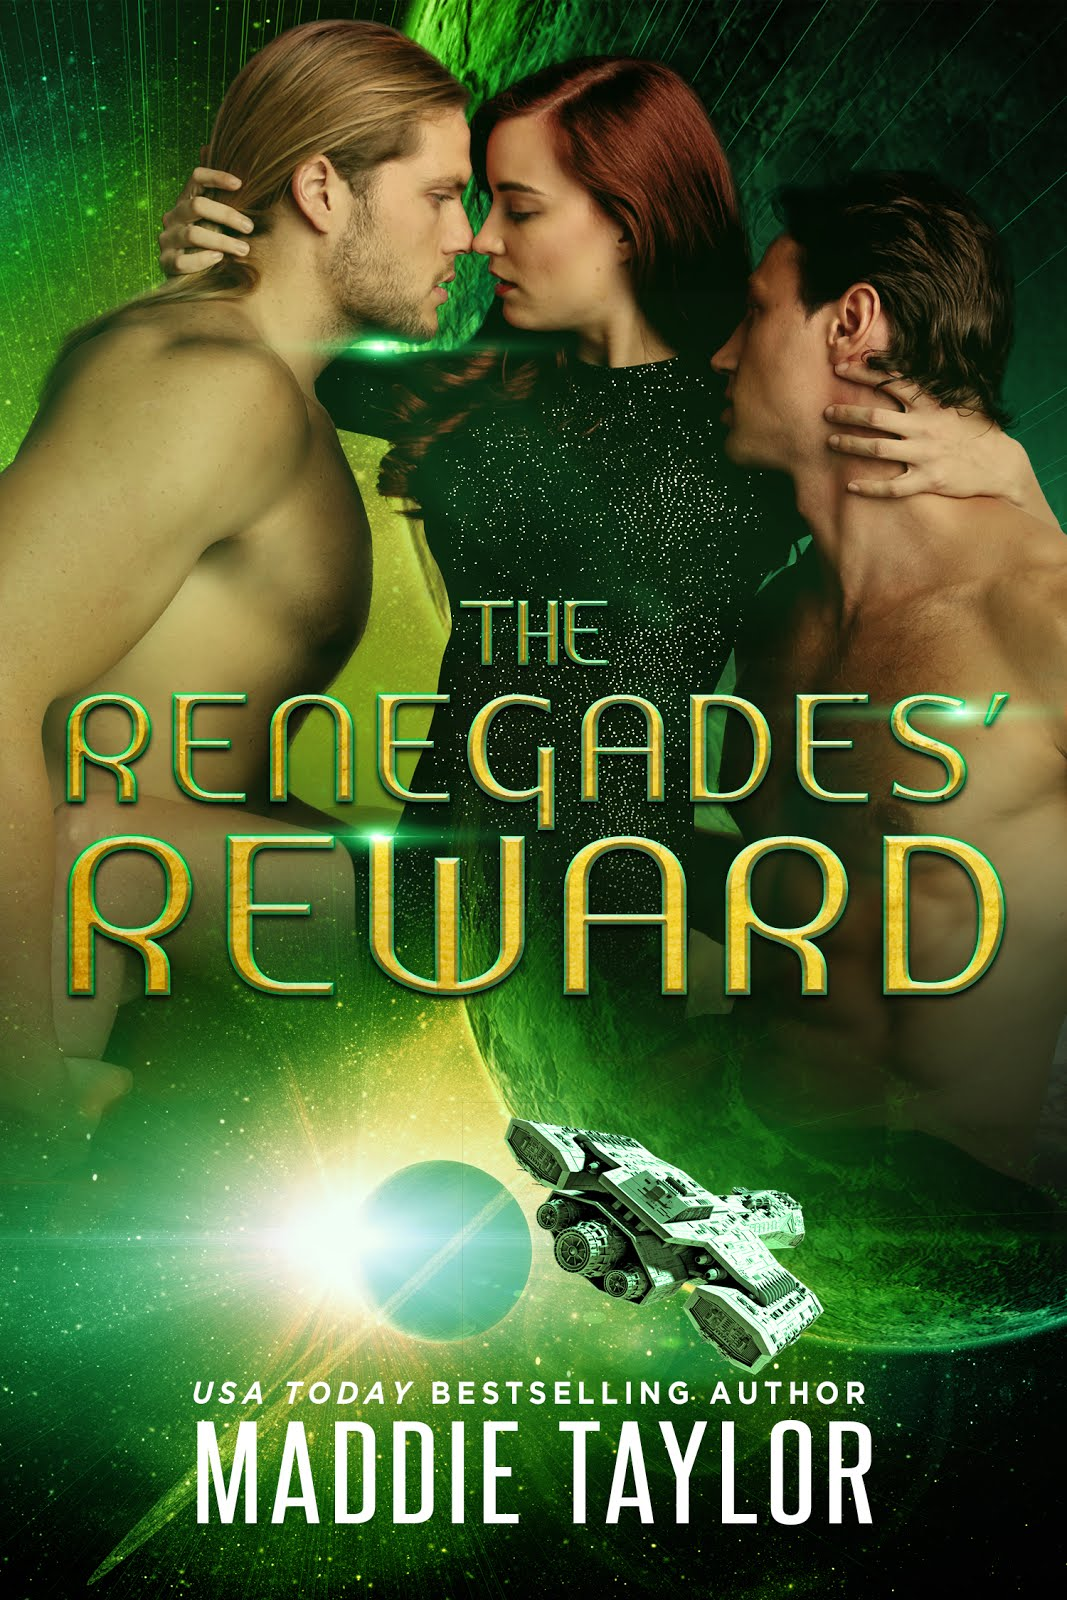 The Renegades' Revenge